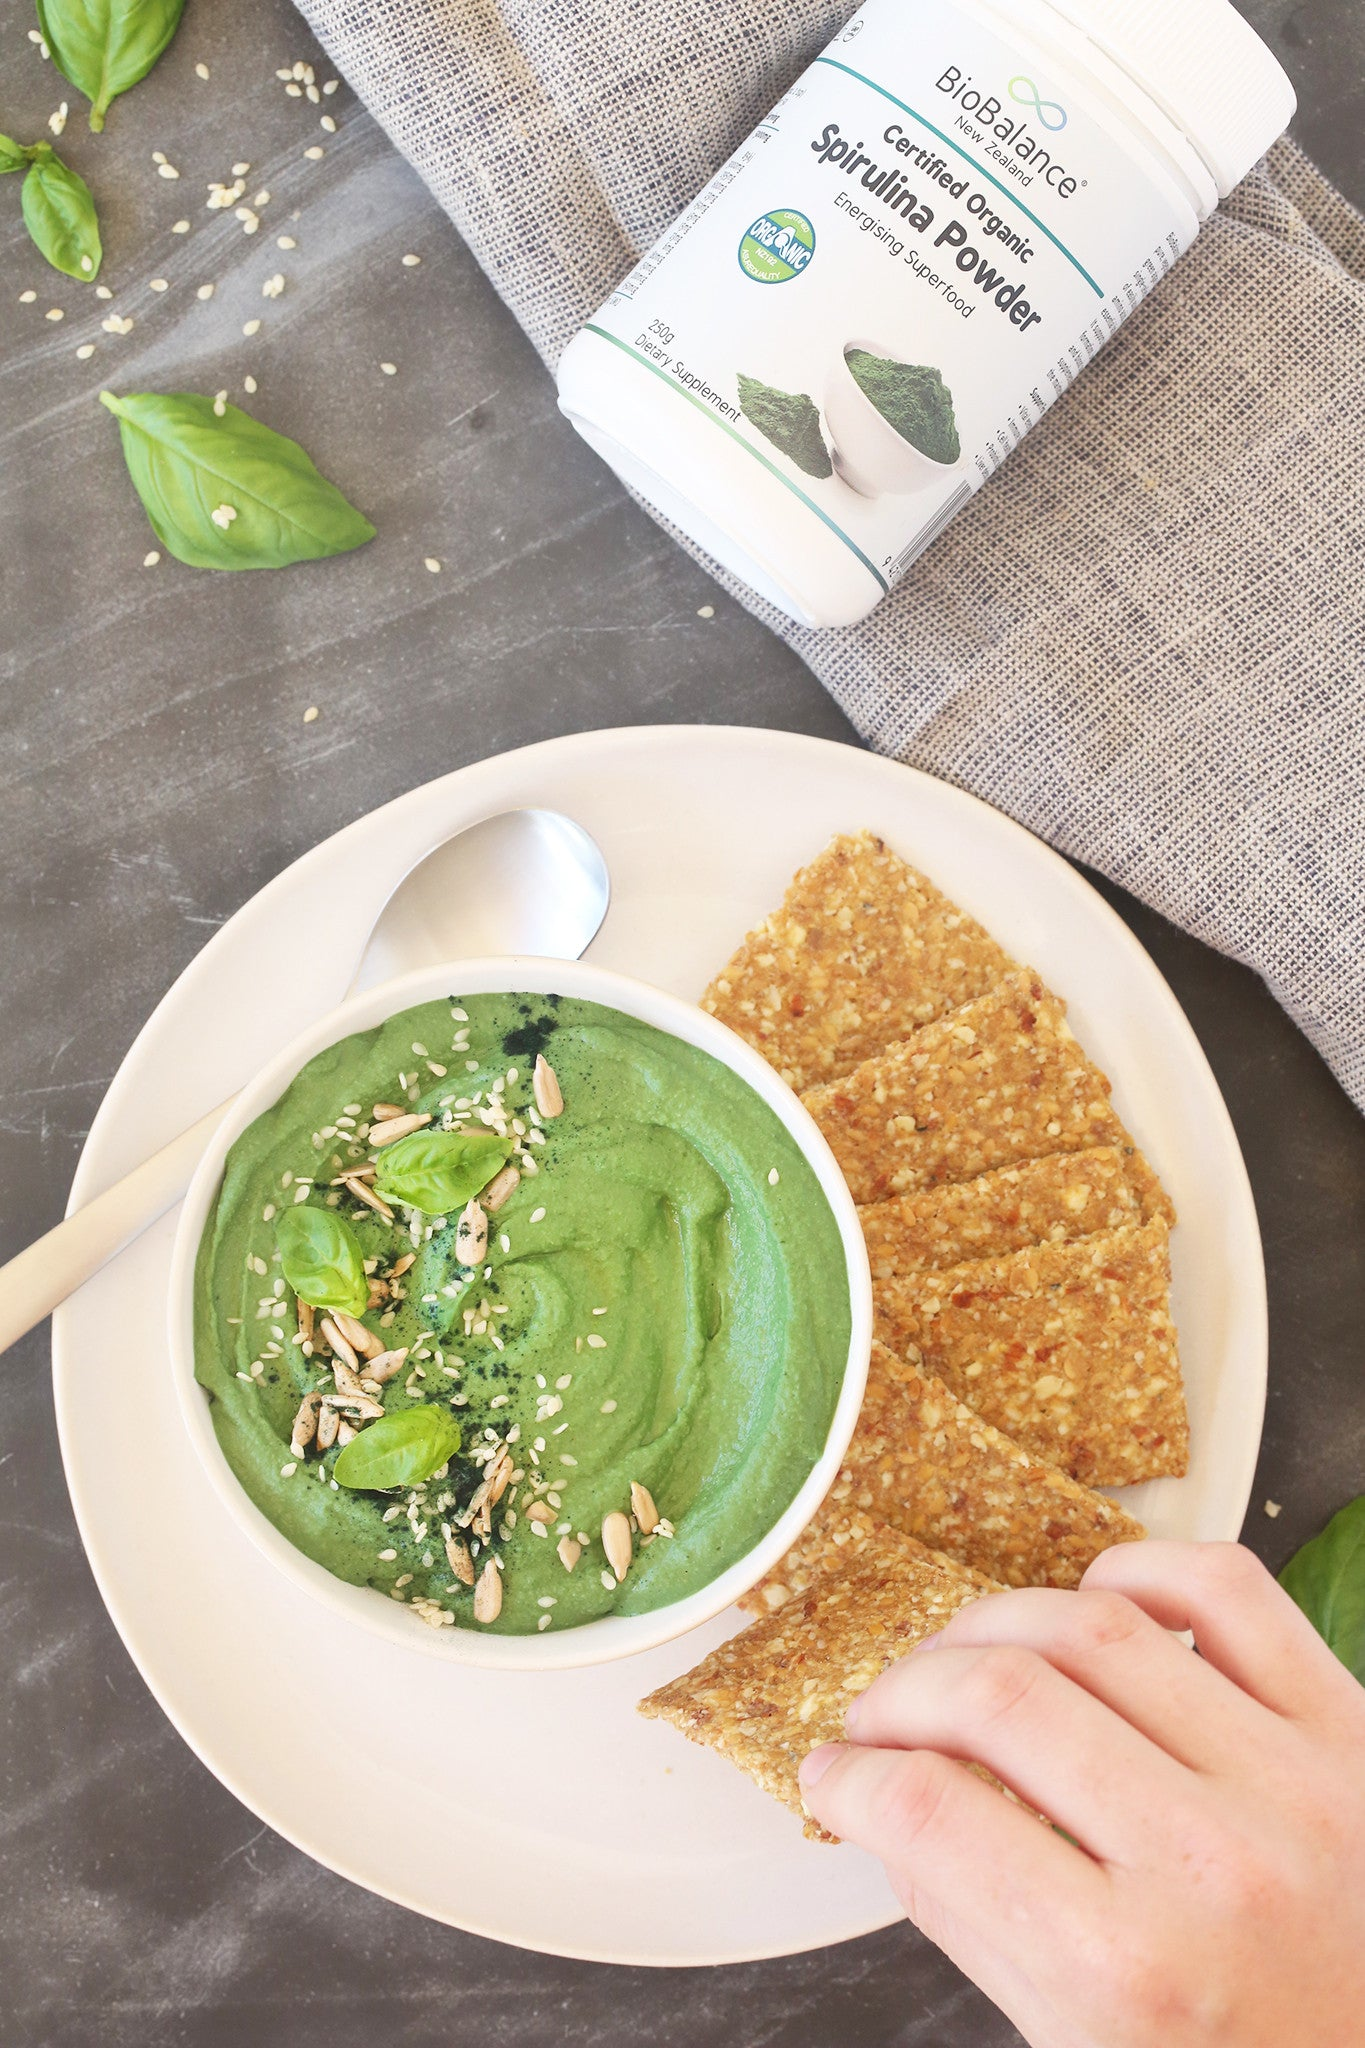 GARDEN GREEN HUMMUS - made with basil, spinach, butter beans and spirulina! Healthy, plant-based, vegan, dairy free, gluten free